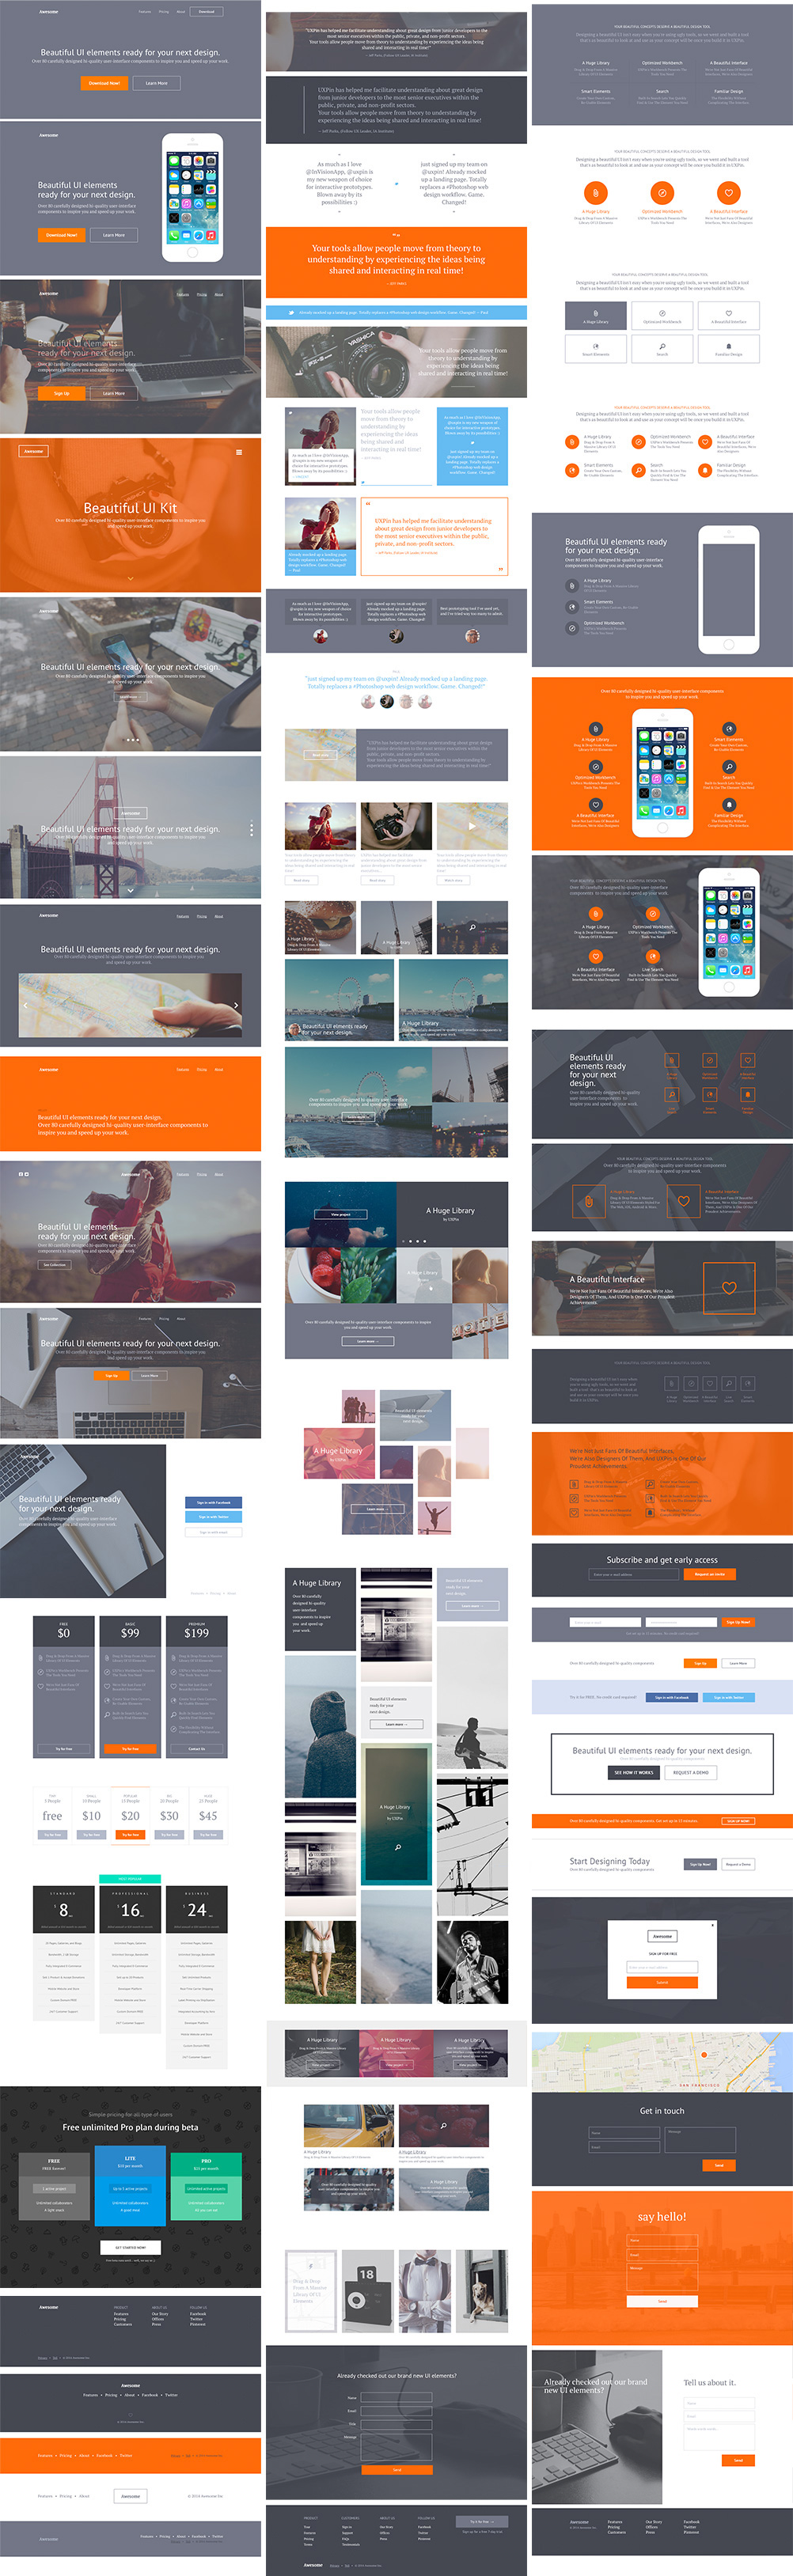 get an awesome ui kit by uxpin for free